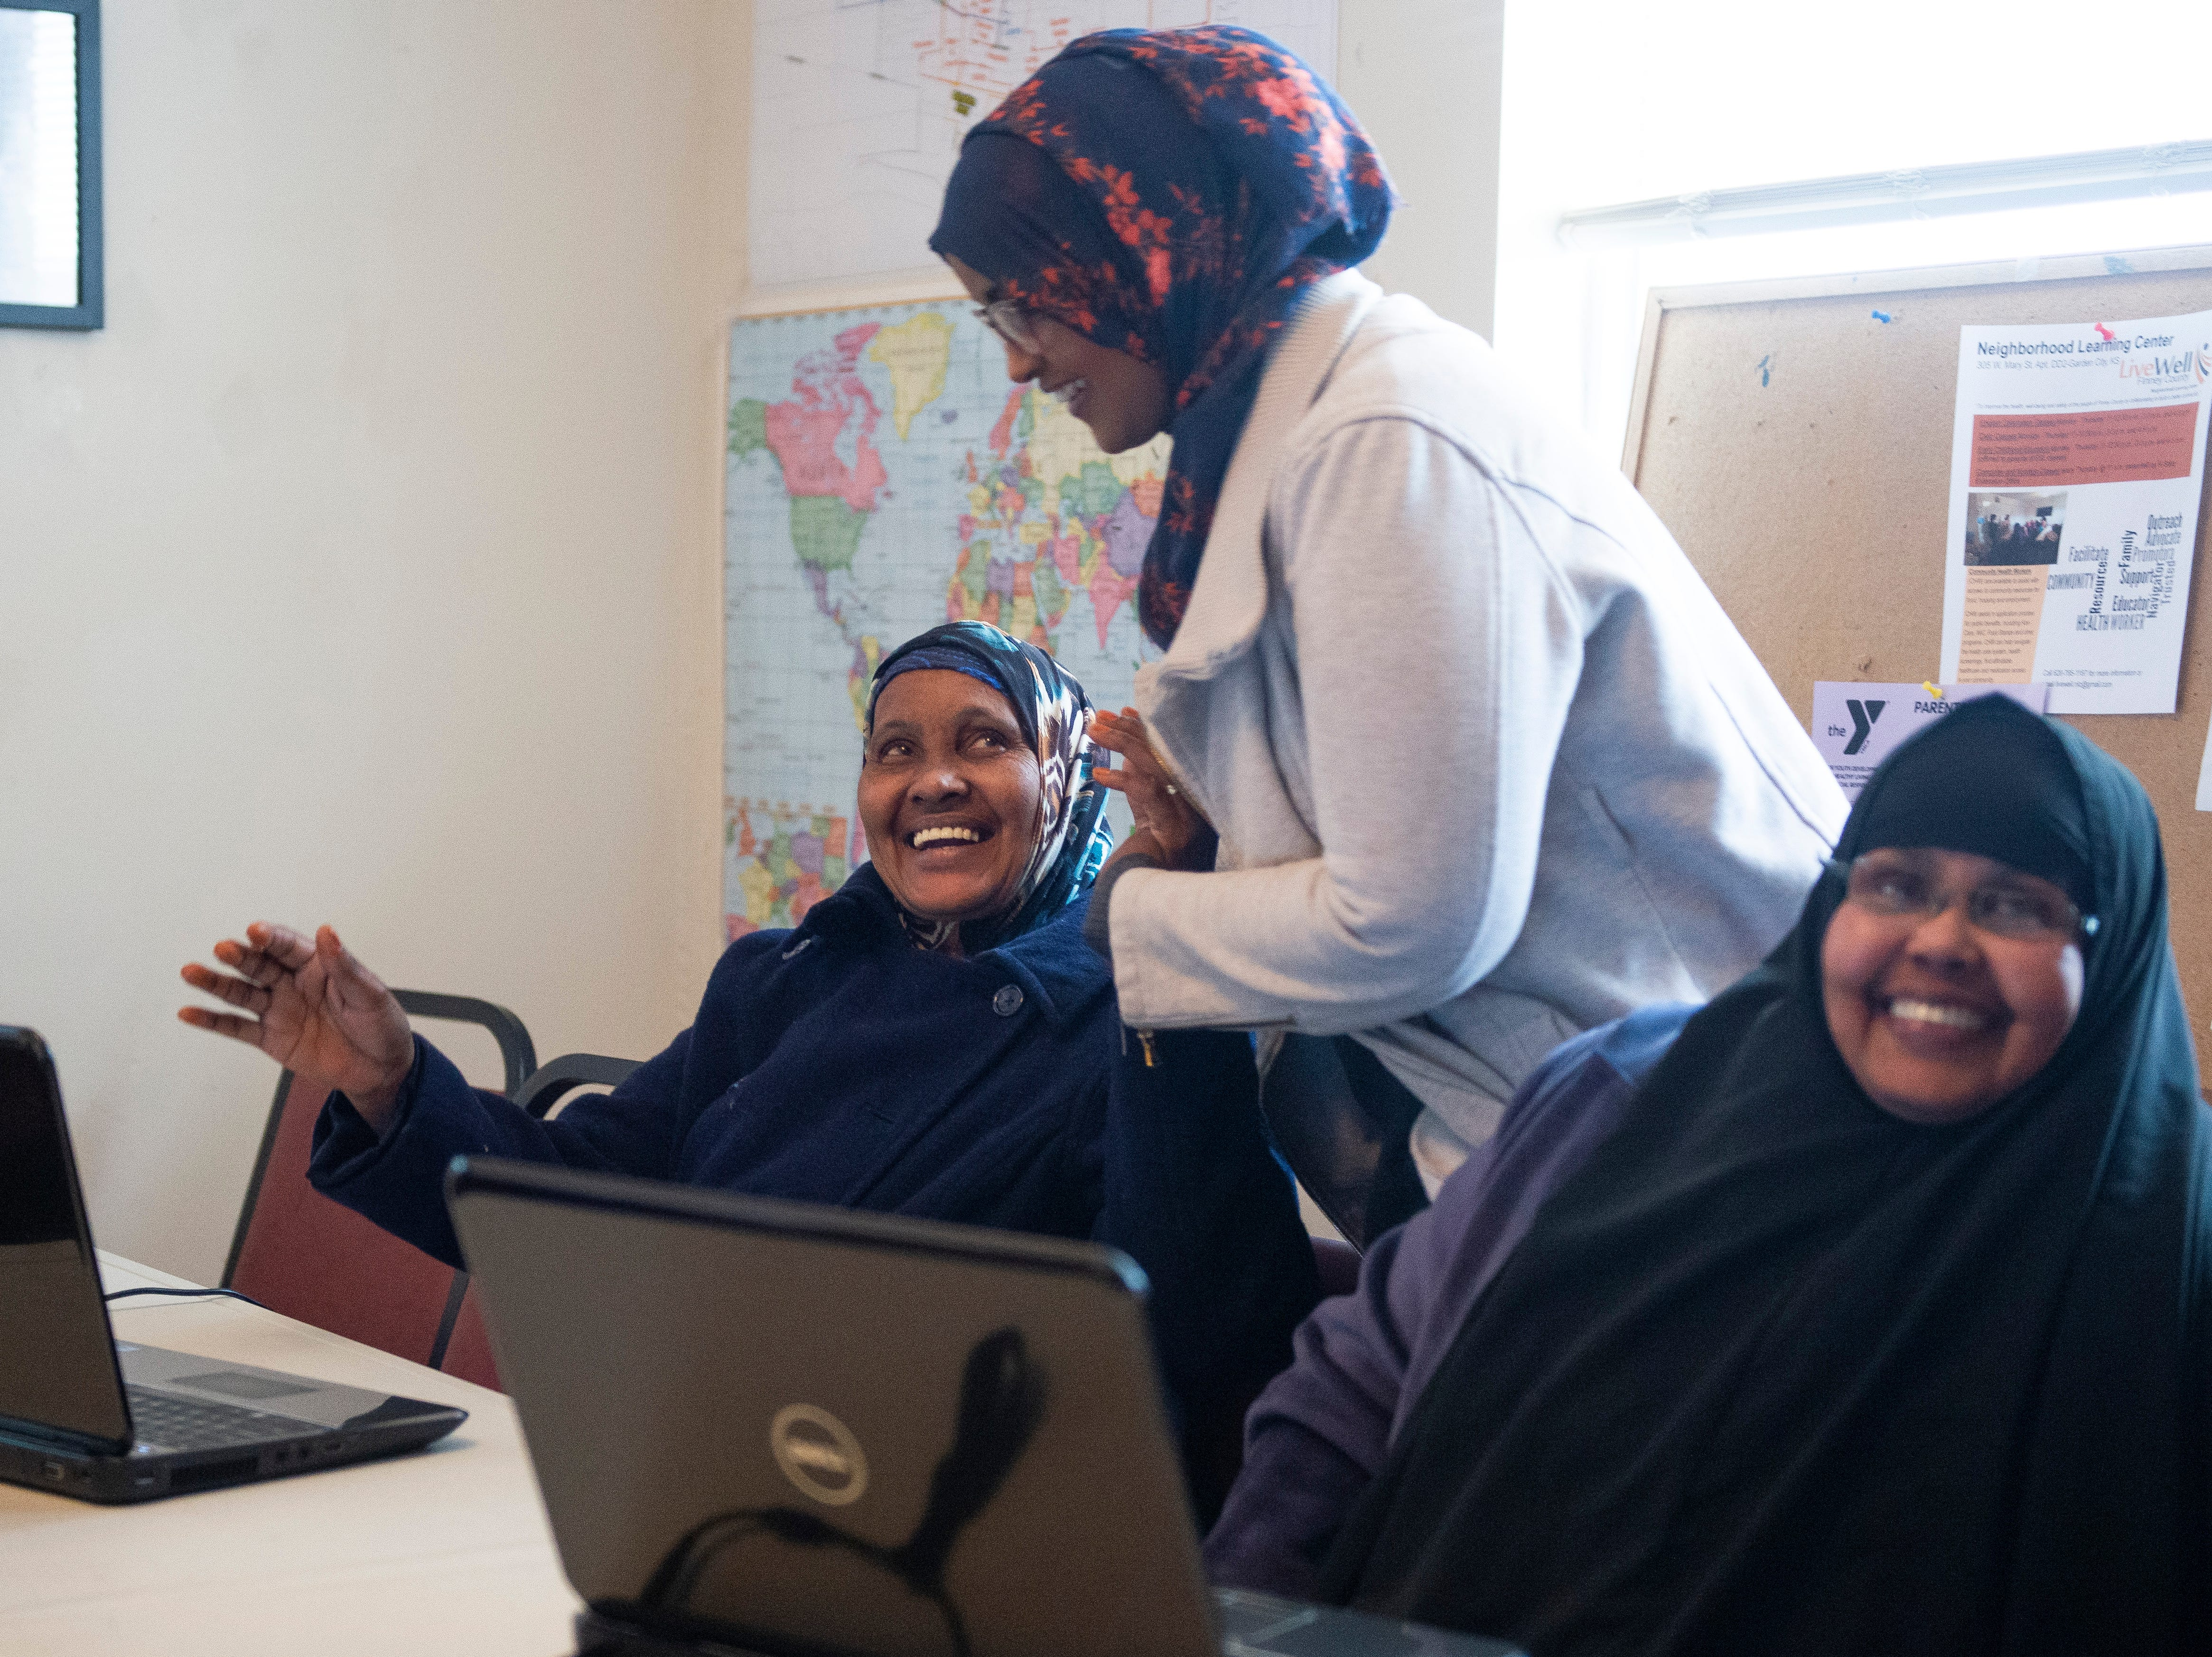 Asli Mohamud, left, smiles at Ifrah Ahmed while taking a nutrition class at LiveWell Neighborhood Learning Center Thursday, Jan. 24, 2019. The learning center helps refugees and immigrants learn English, learn to read and write and with other life skills.